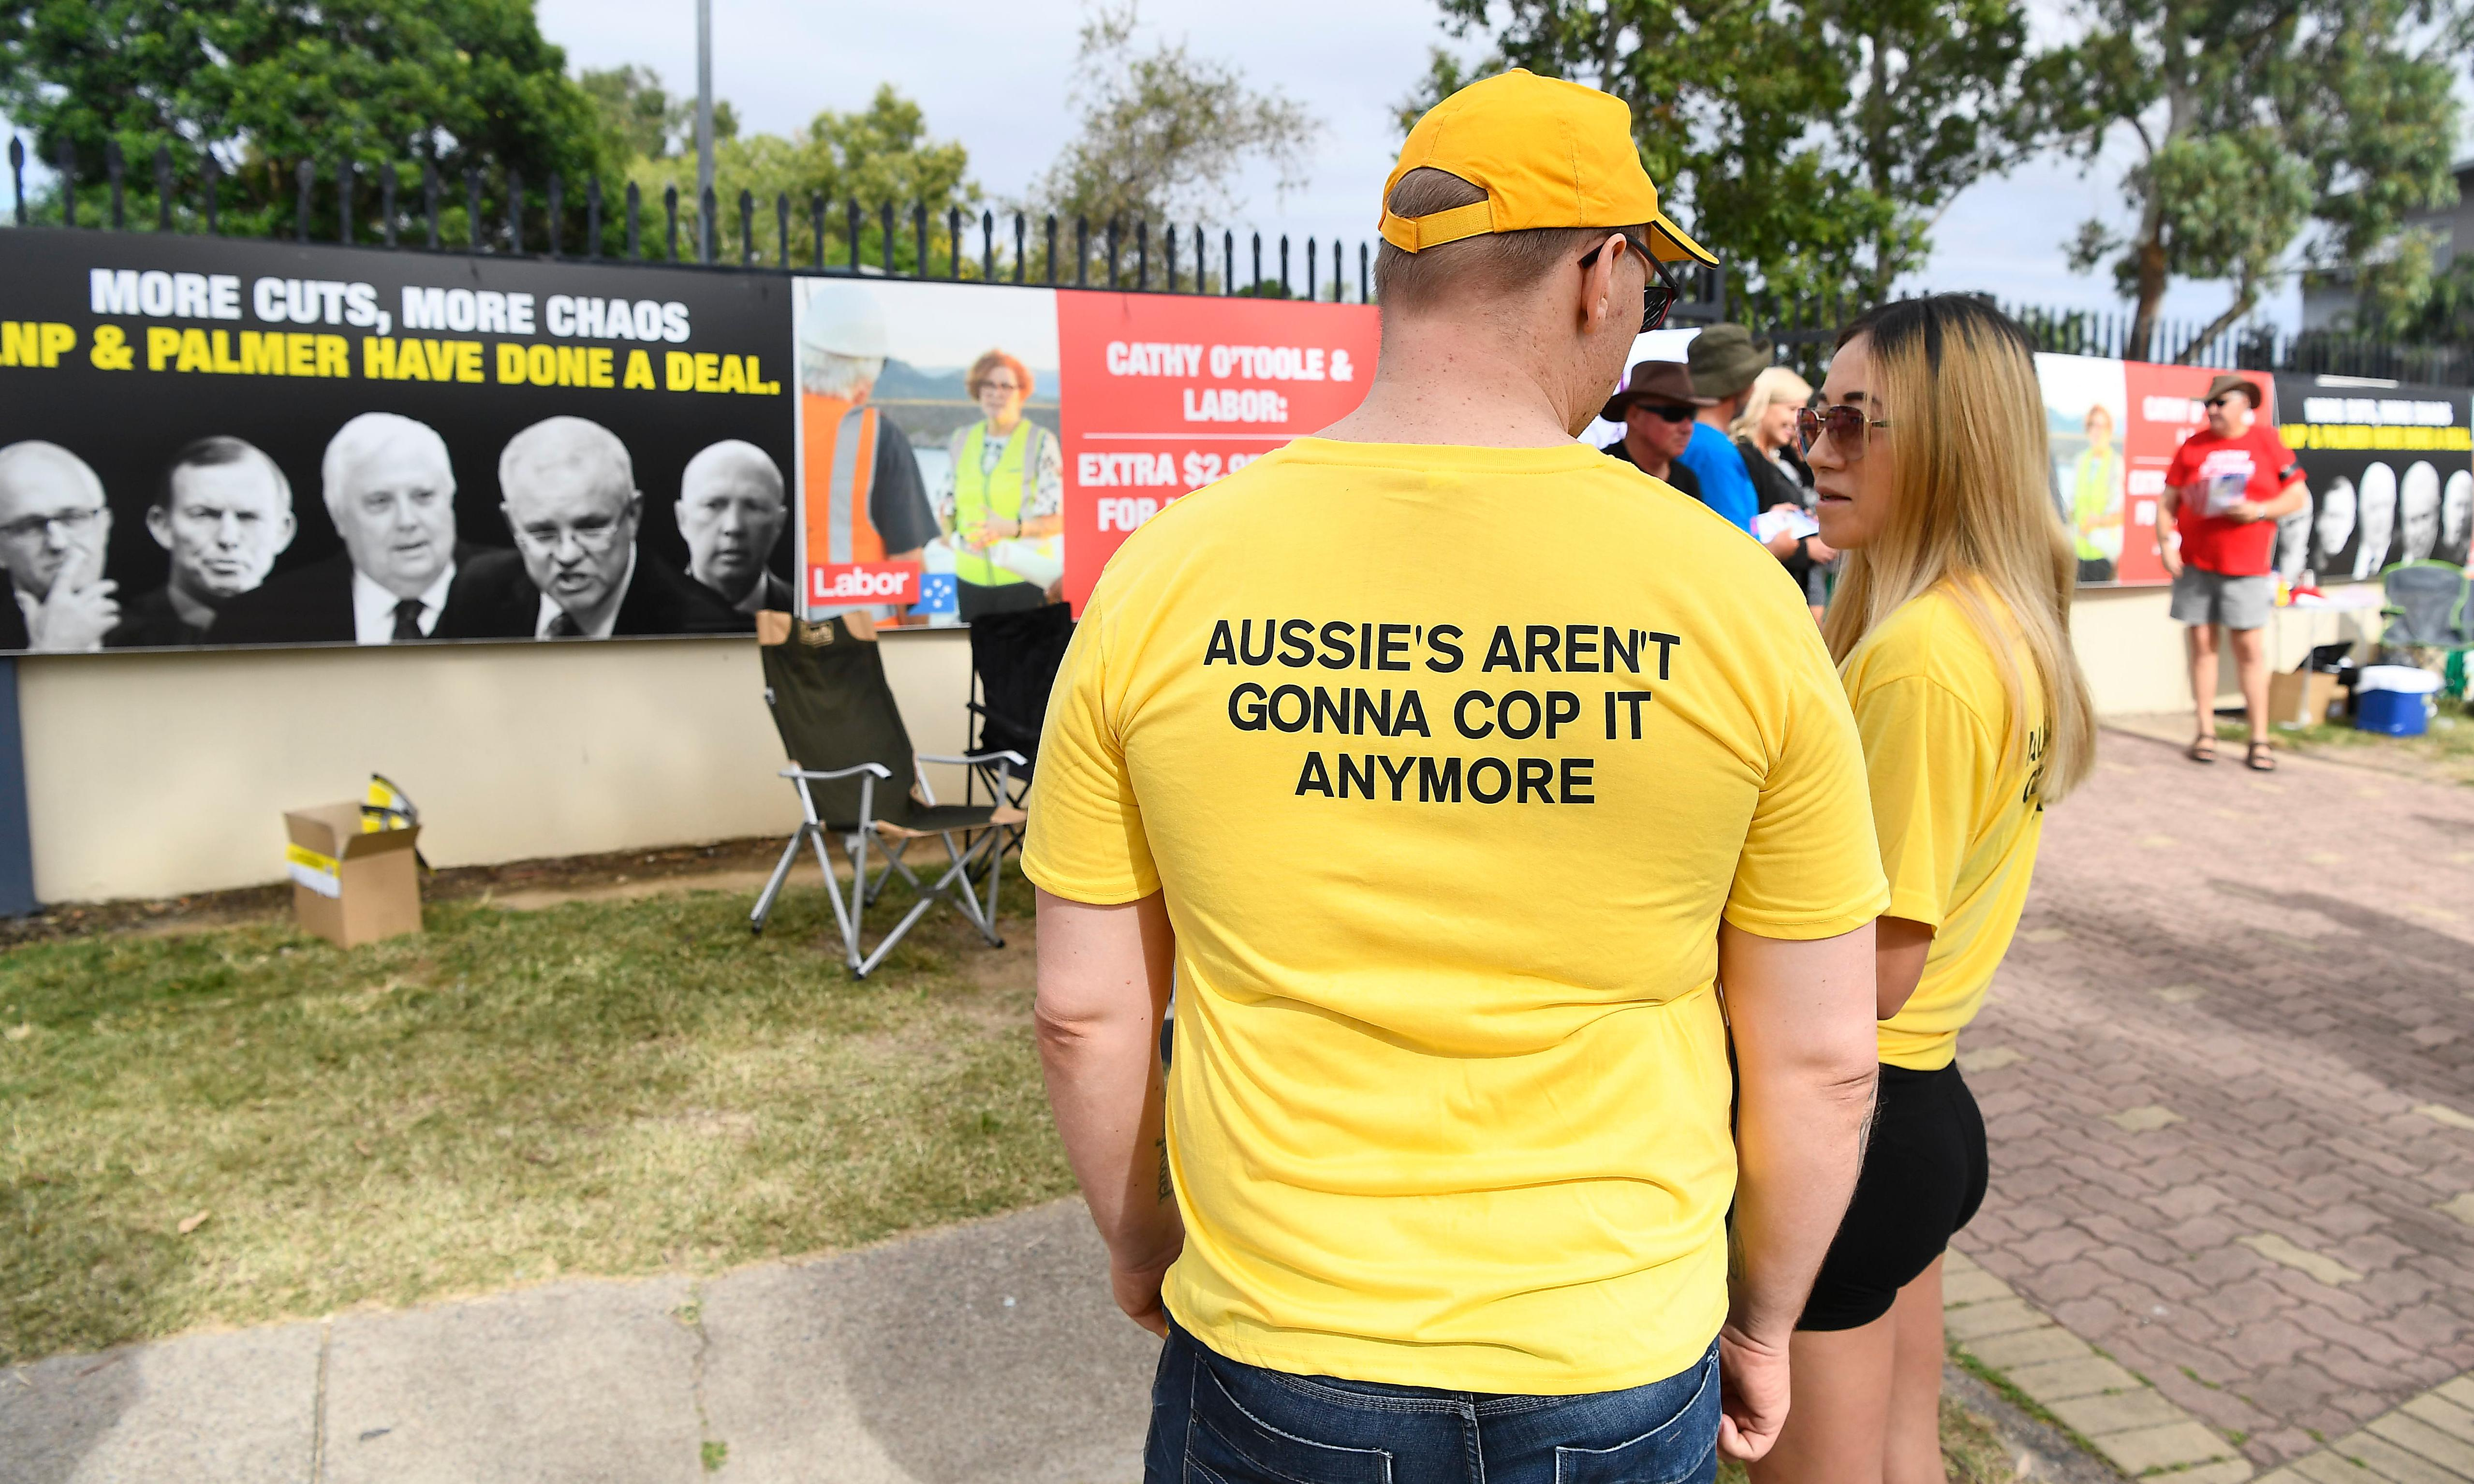 North Queensland is just at the sharp end of what's happening across Australia